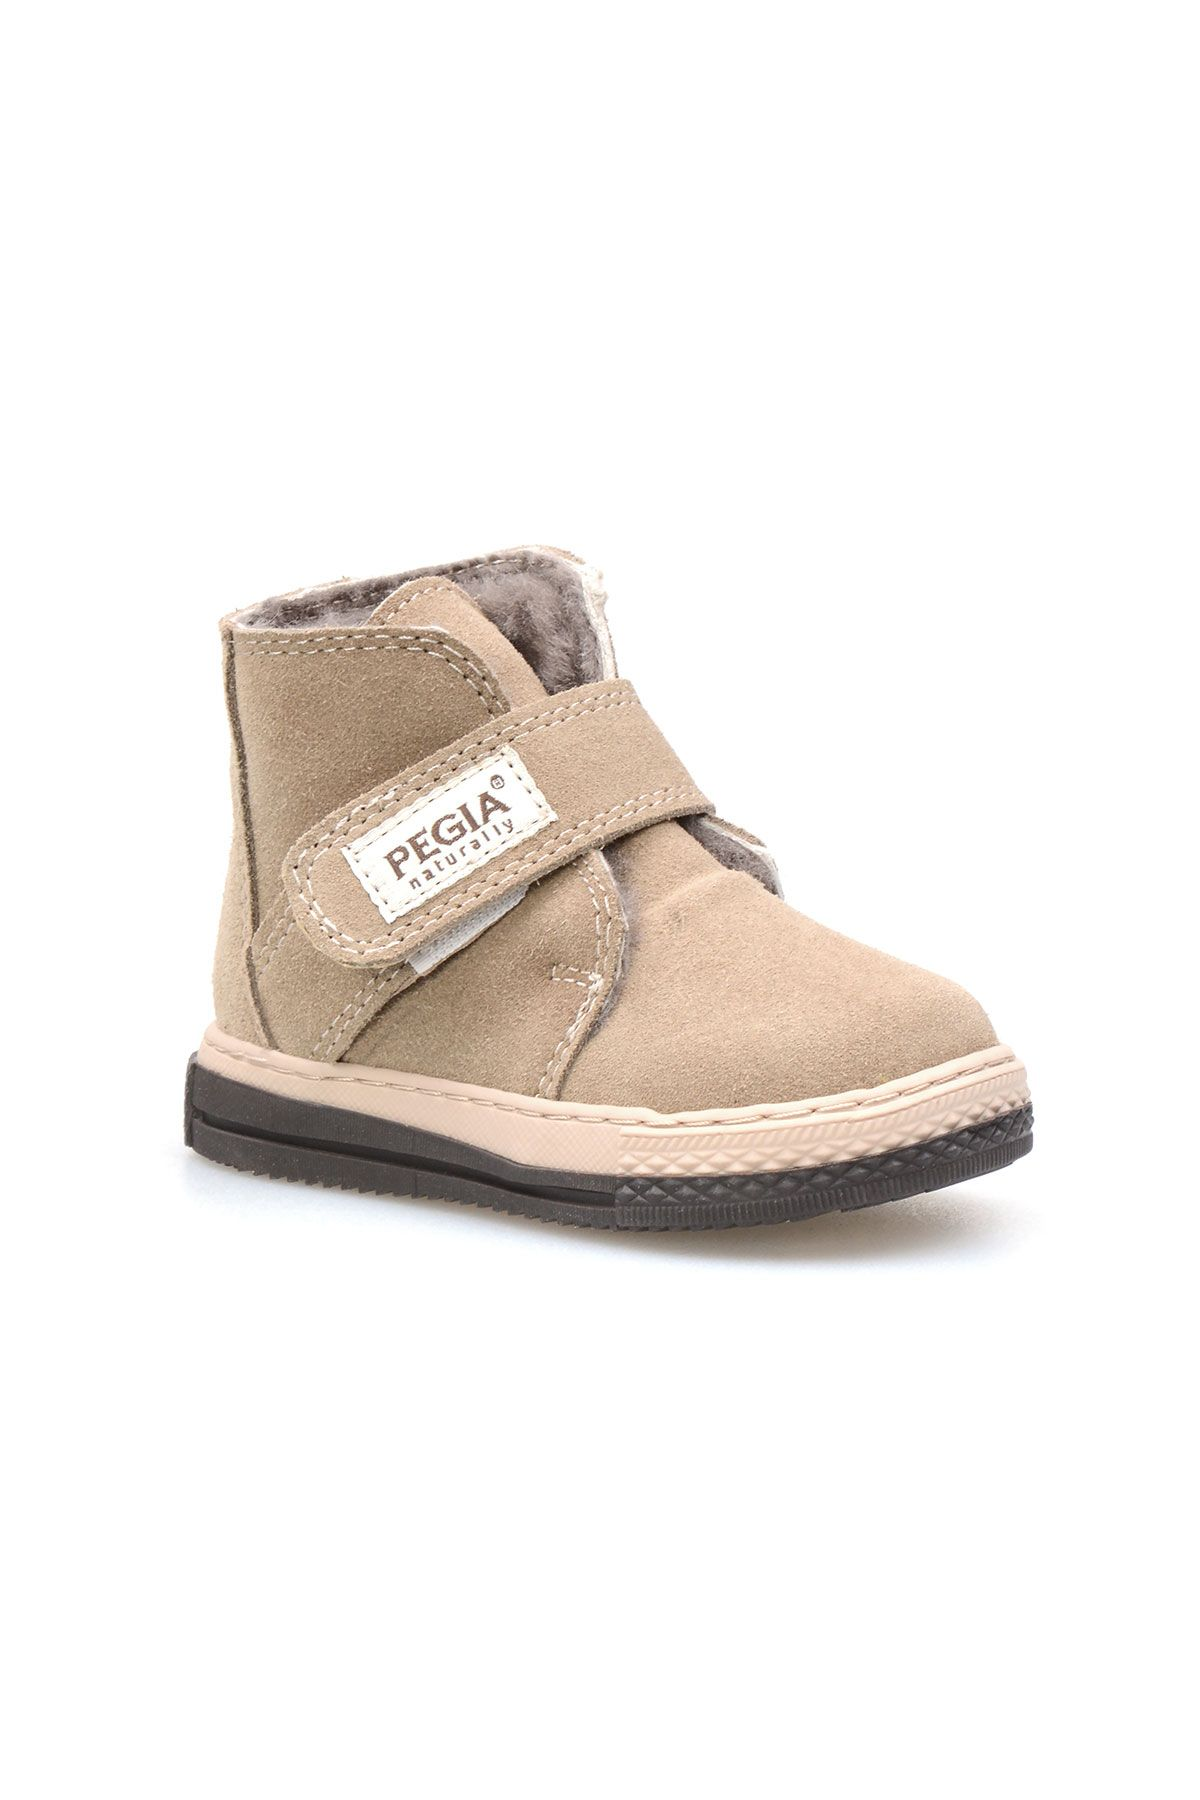 Pegia Genuine Suede Sheepskin Lined Kid's Boots 186020 Sand-colored